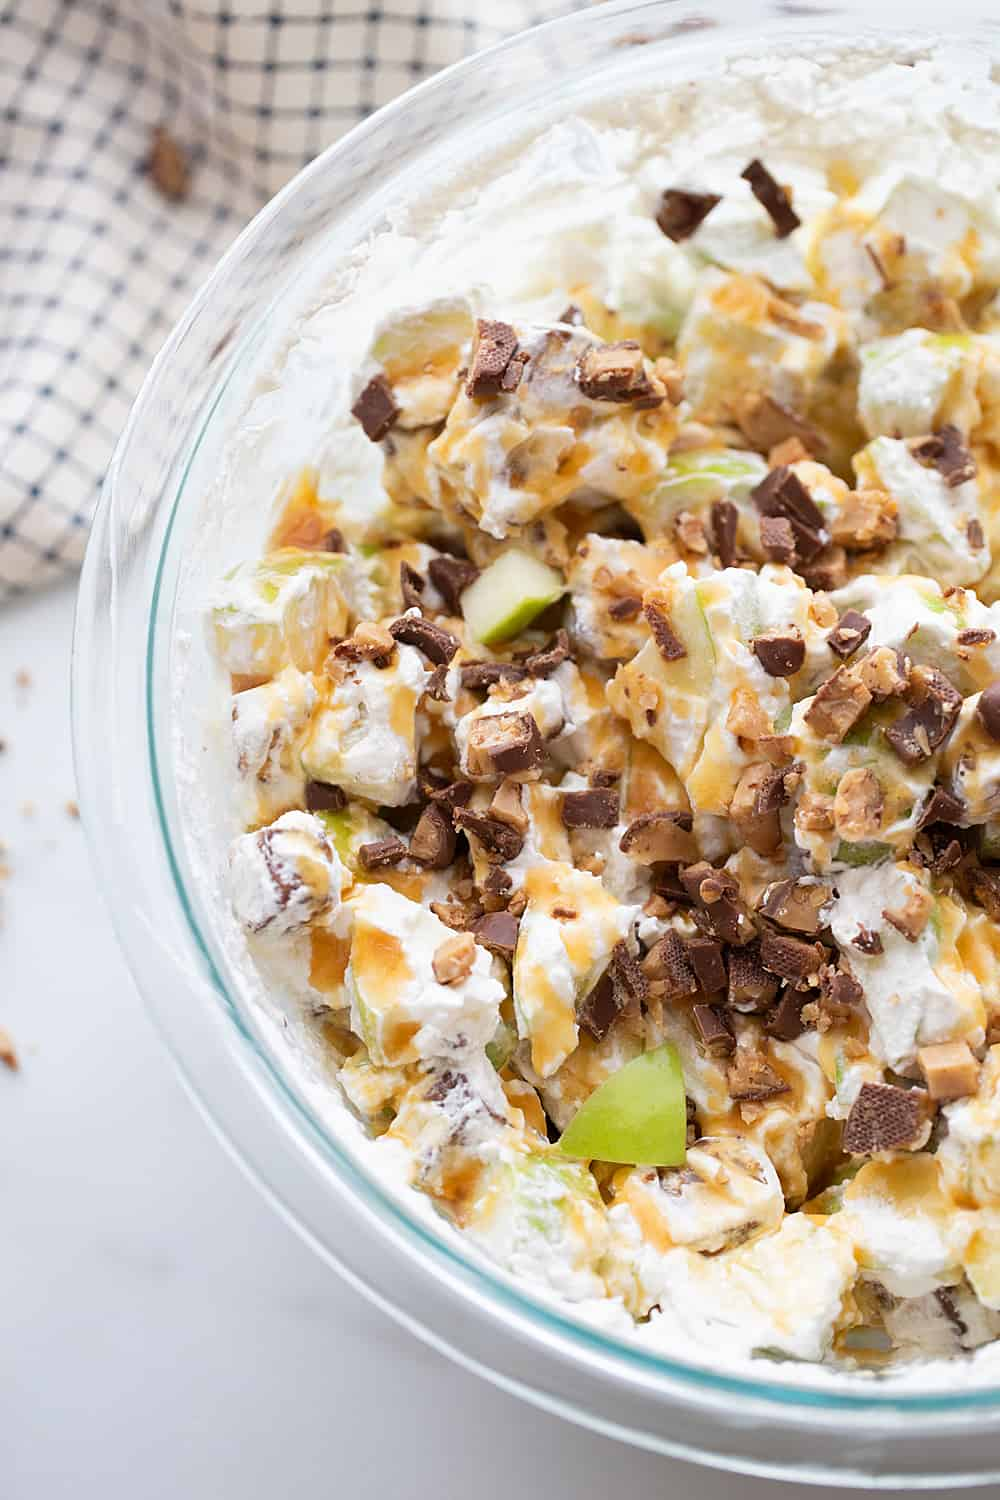 Easy Snickers Salad - This easy Snickers salad features Granny Smith apples, Snickers, and whipped topping with a drizzle of caramel and a sprinkle of toffee bits. #snickers #salad #dessert #halfscratched #easyrecipe #dessertsalad #sweets